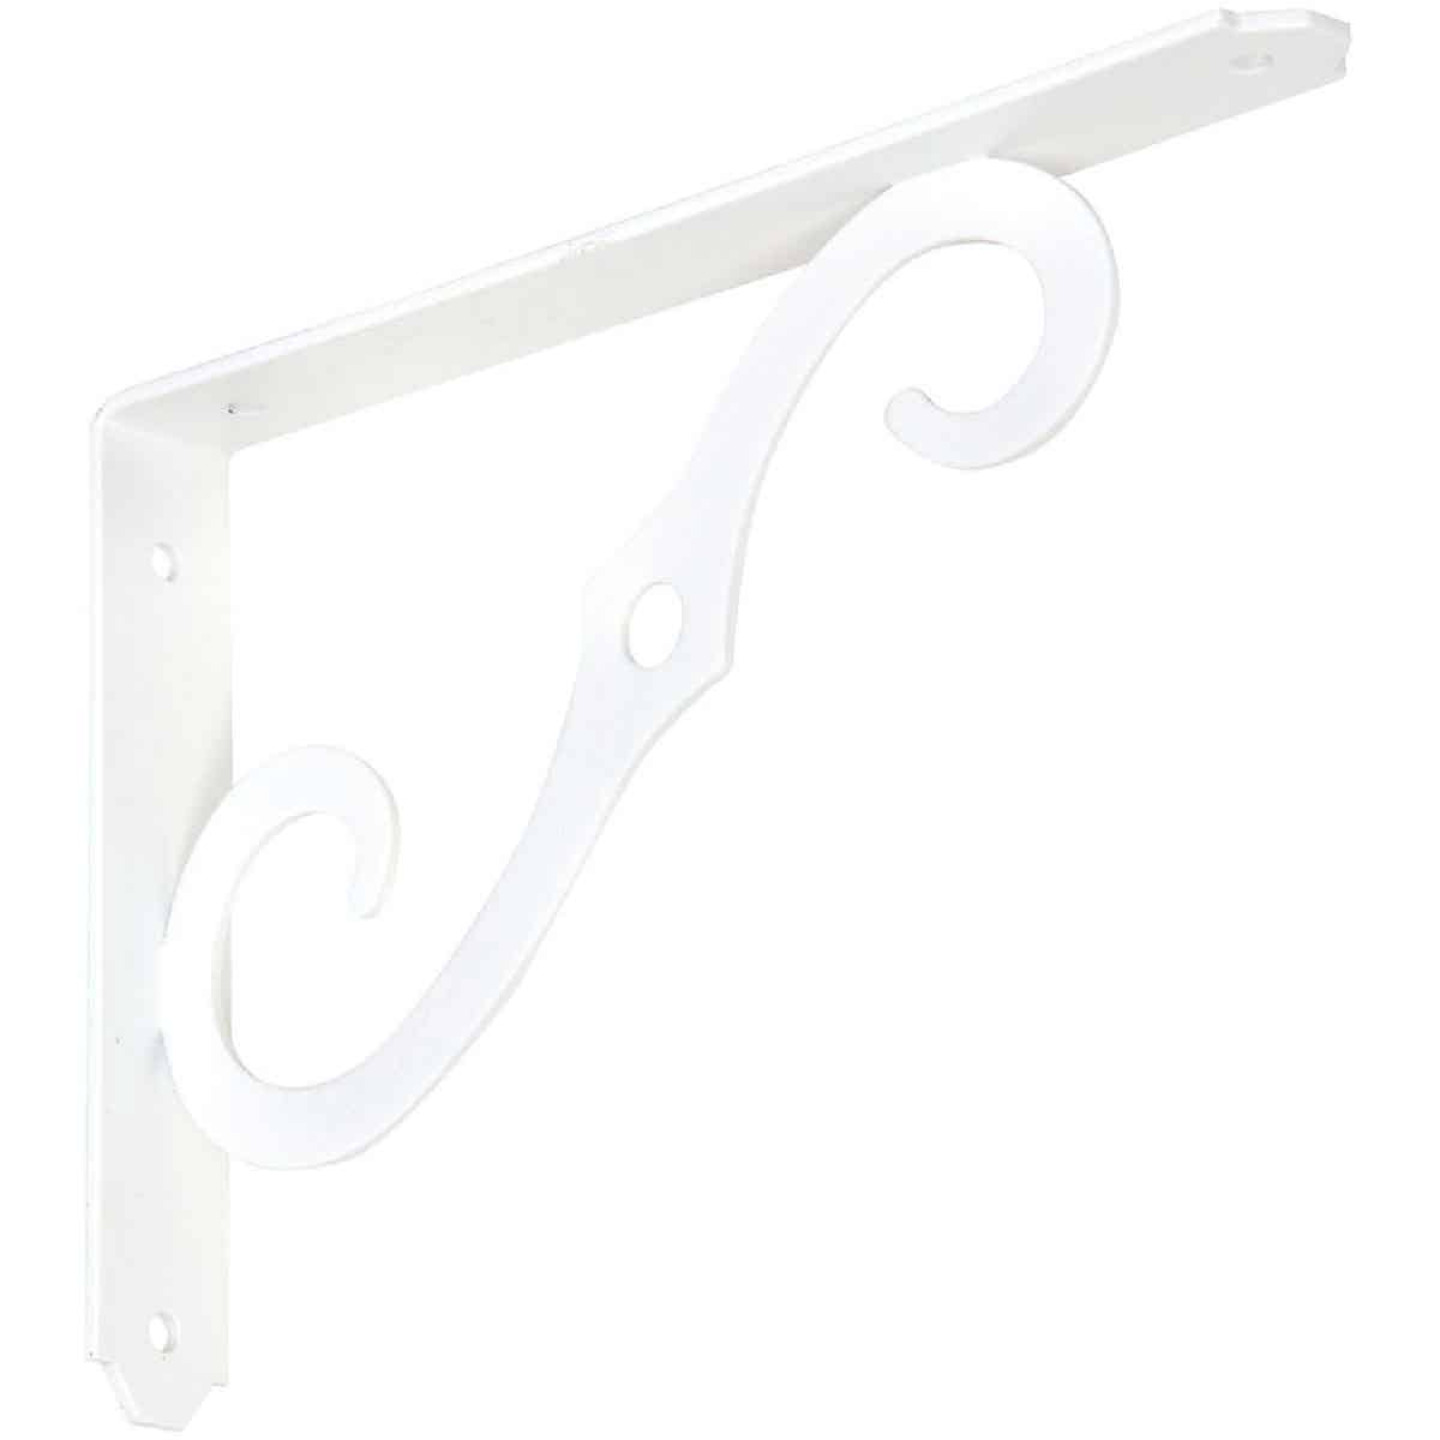 National 152 8 In. D. x 5-1/2 In. H. Antique White Steel Ornamental Shelf Bracket/Plant Hanger Image 1